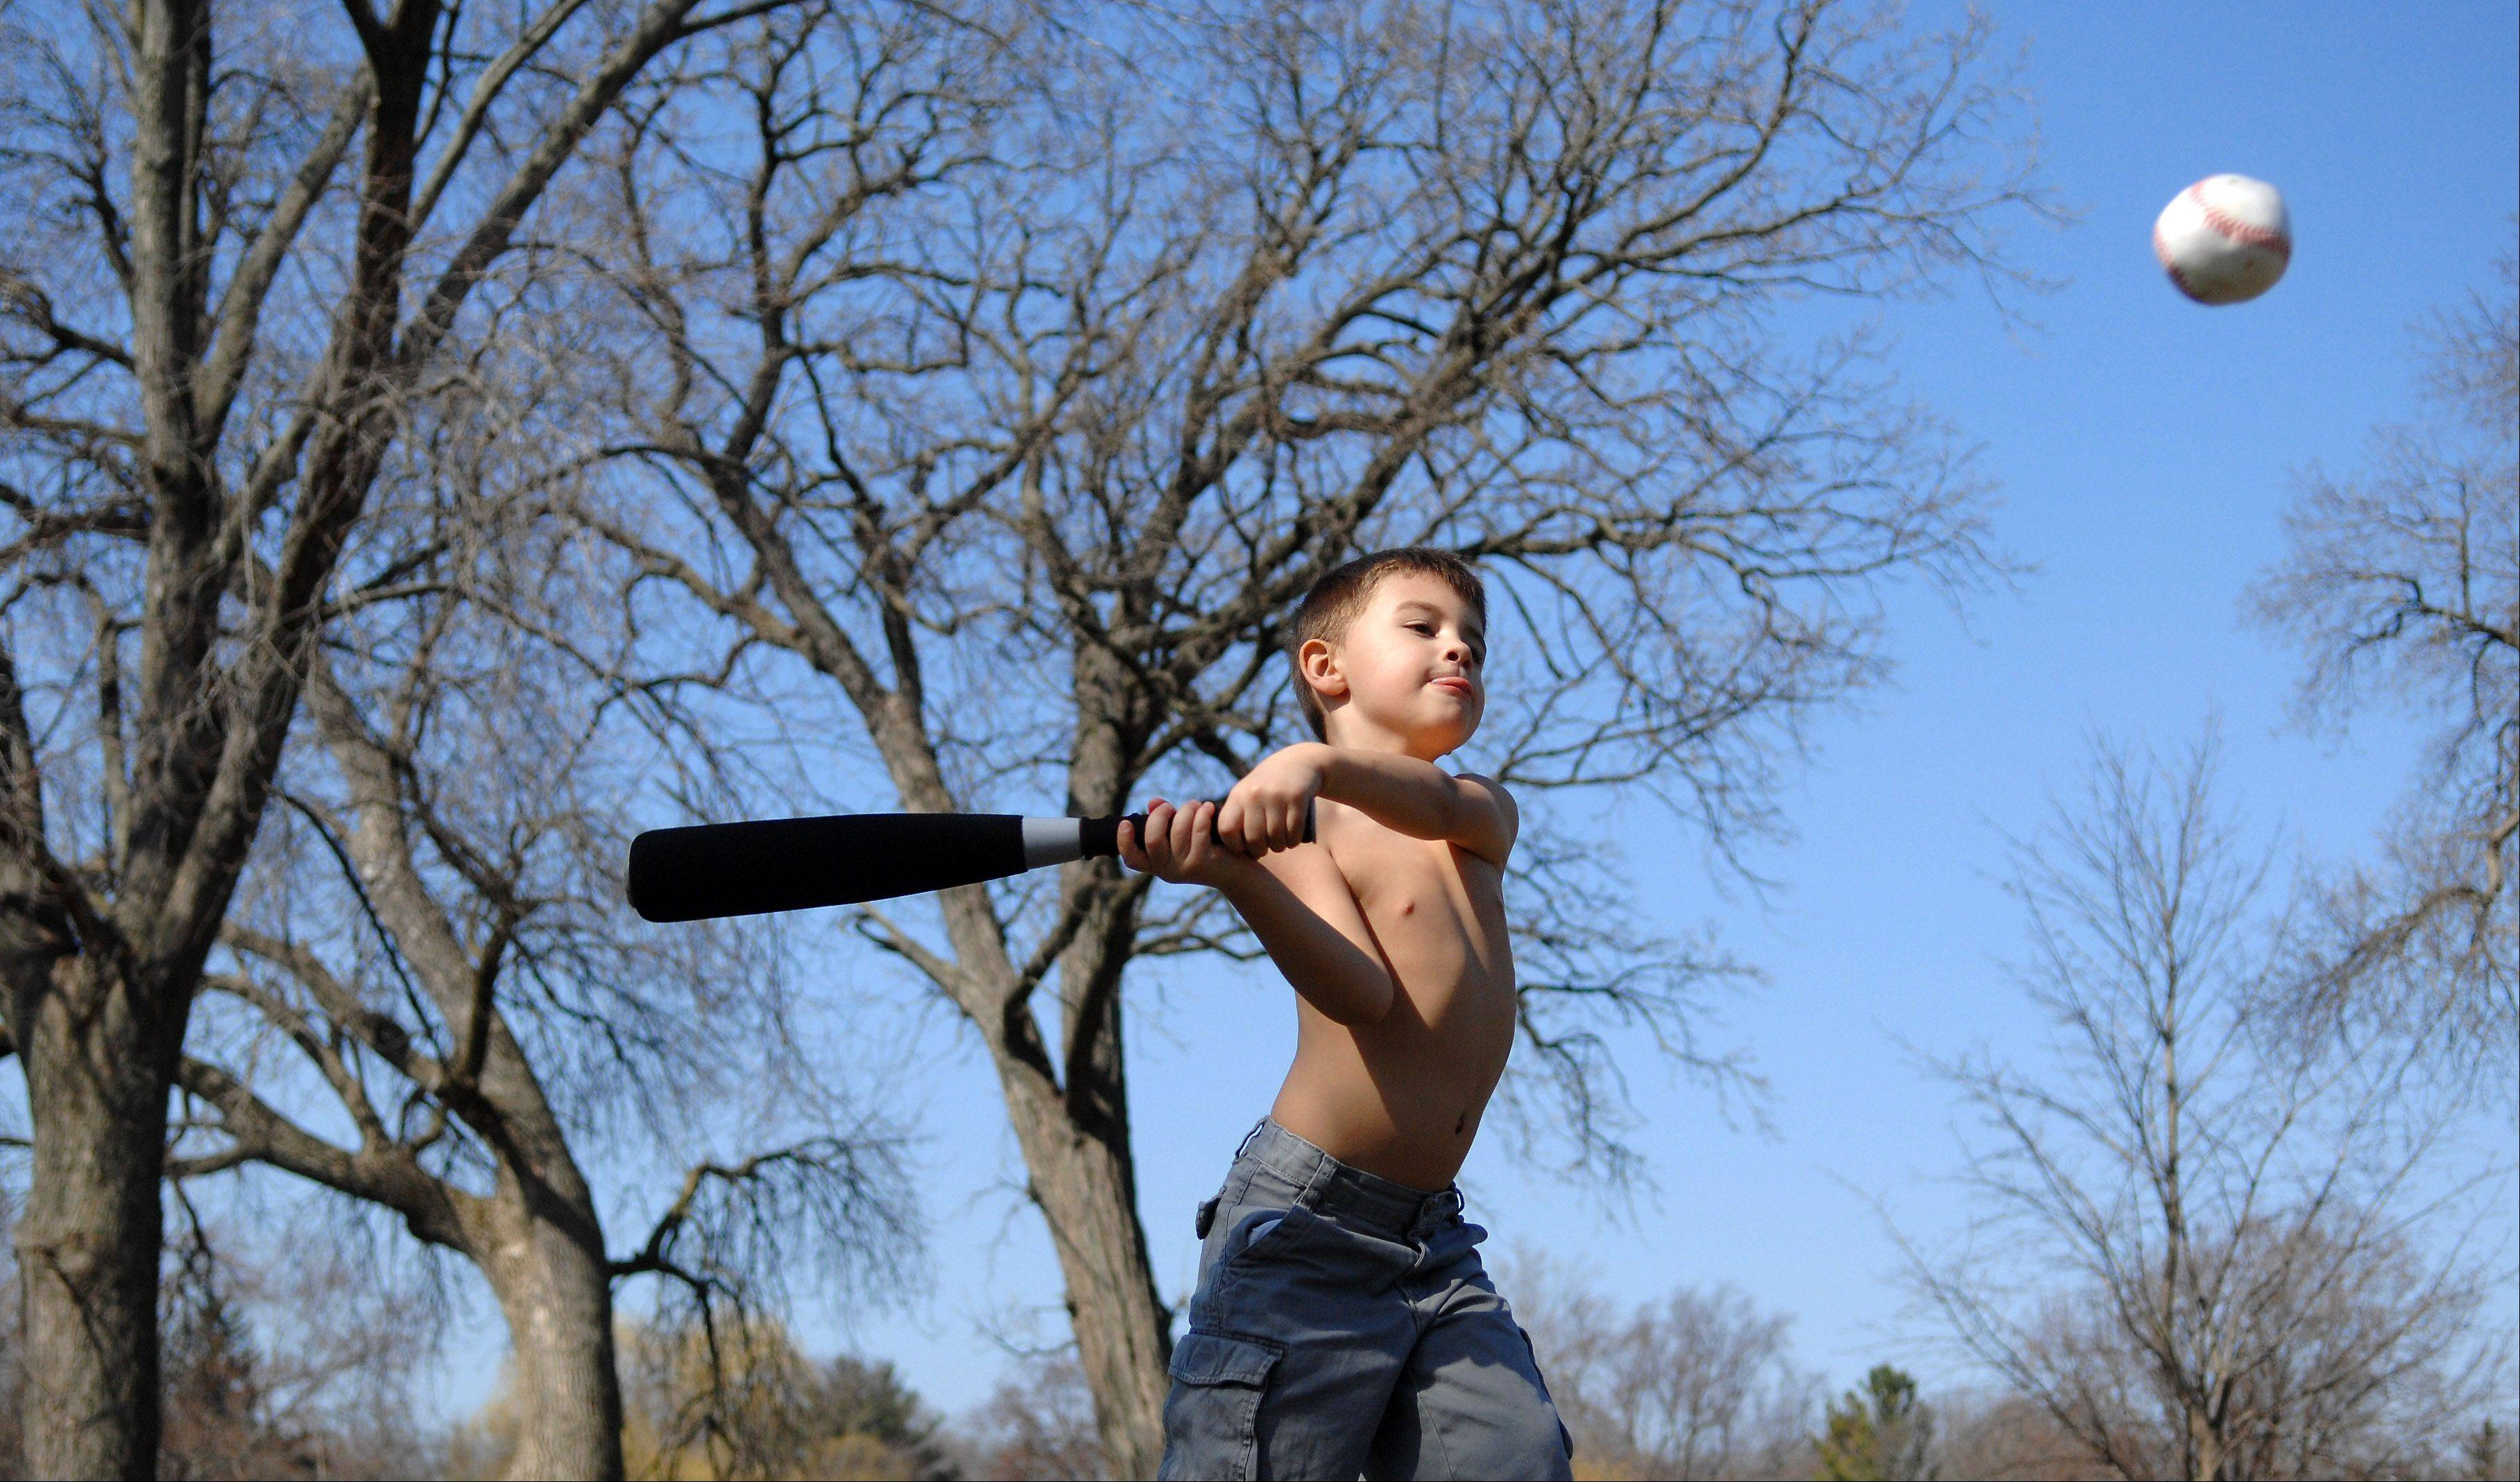 Rick West/Daily Herald, March 2012  Last year in mid-March temperatures hovered around 80 degrees when 5-year-old Adrien Schavone of North Aurora readies his swing while playing baseball with his dad at Island Park in Geneva.